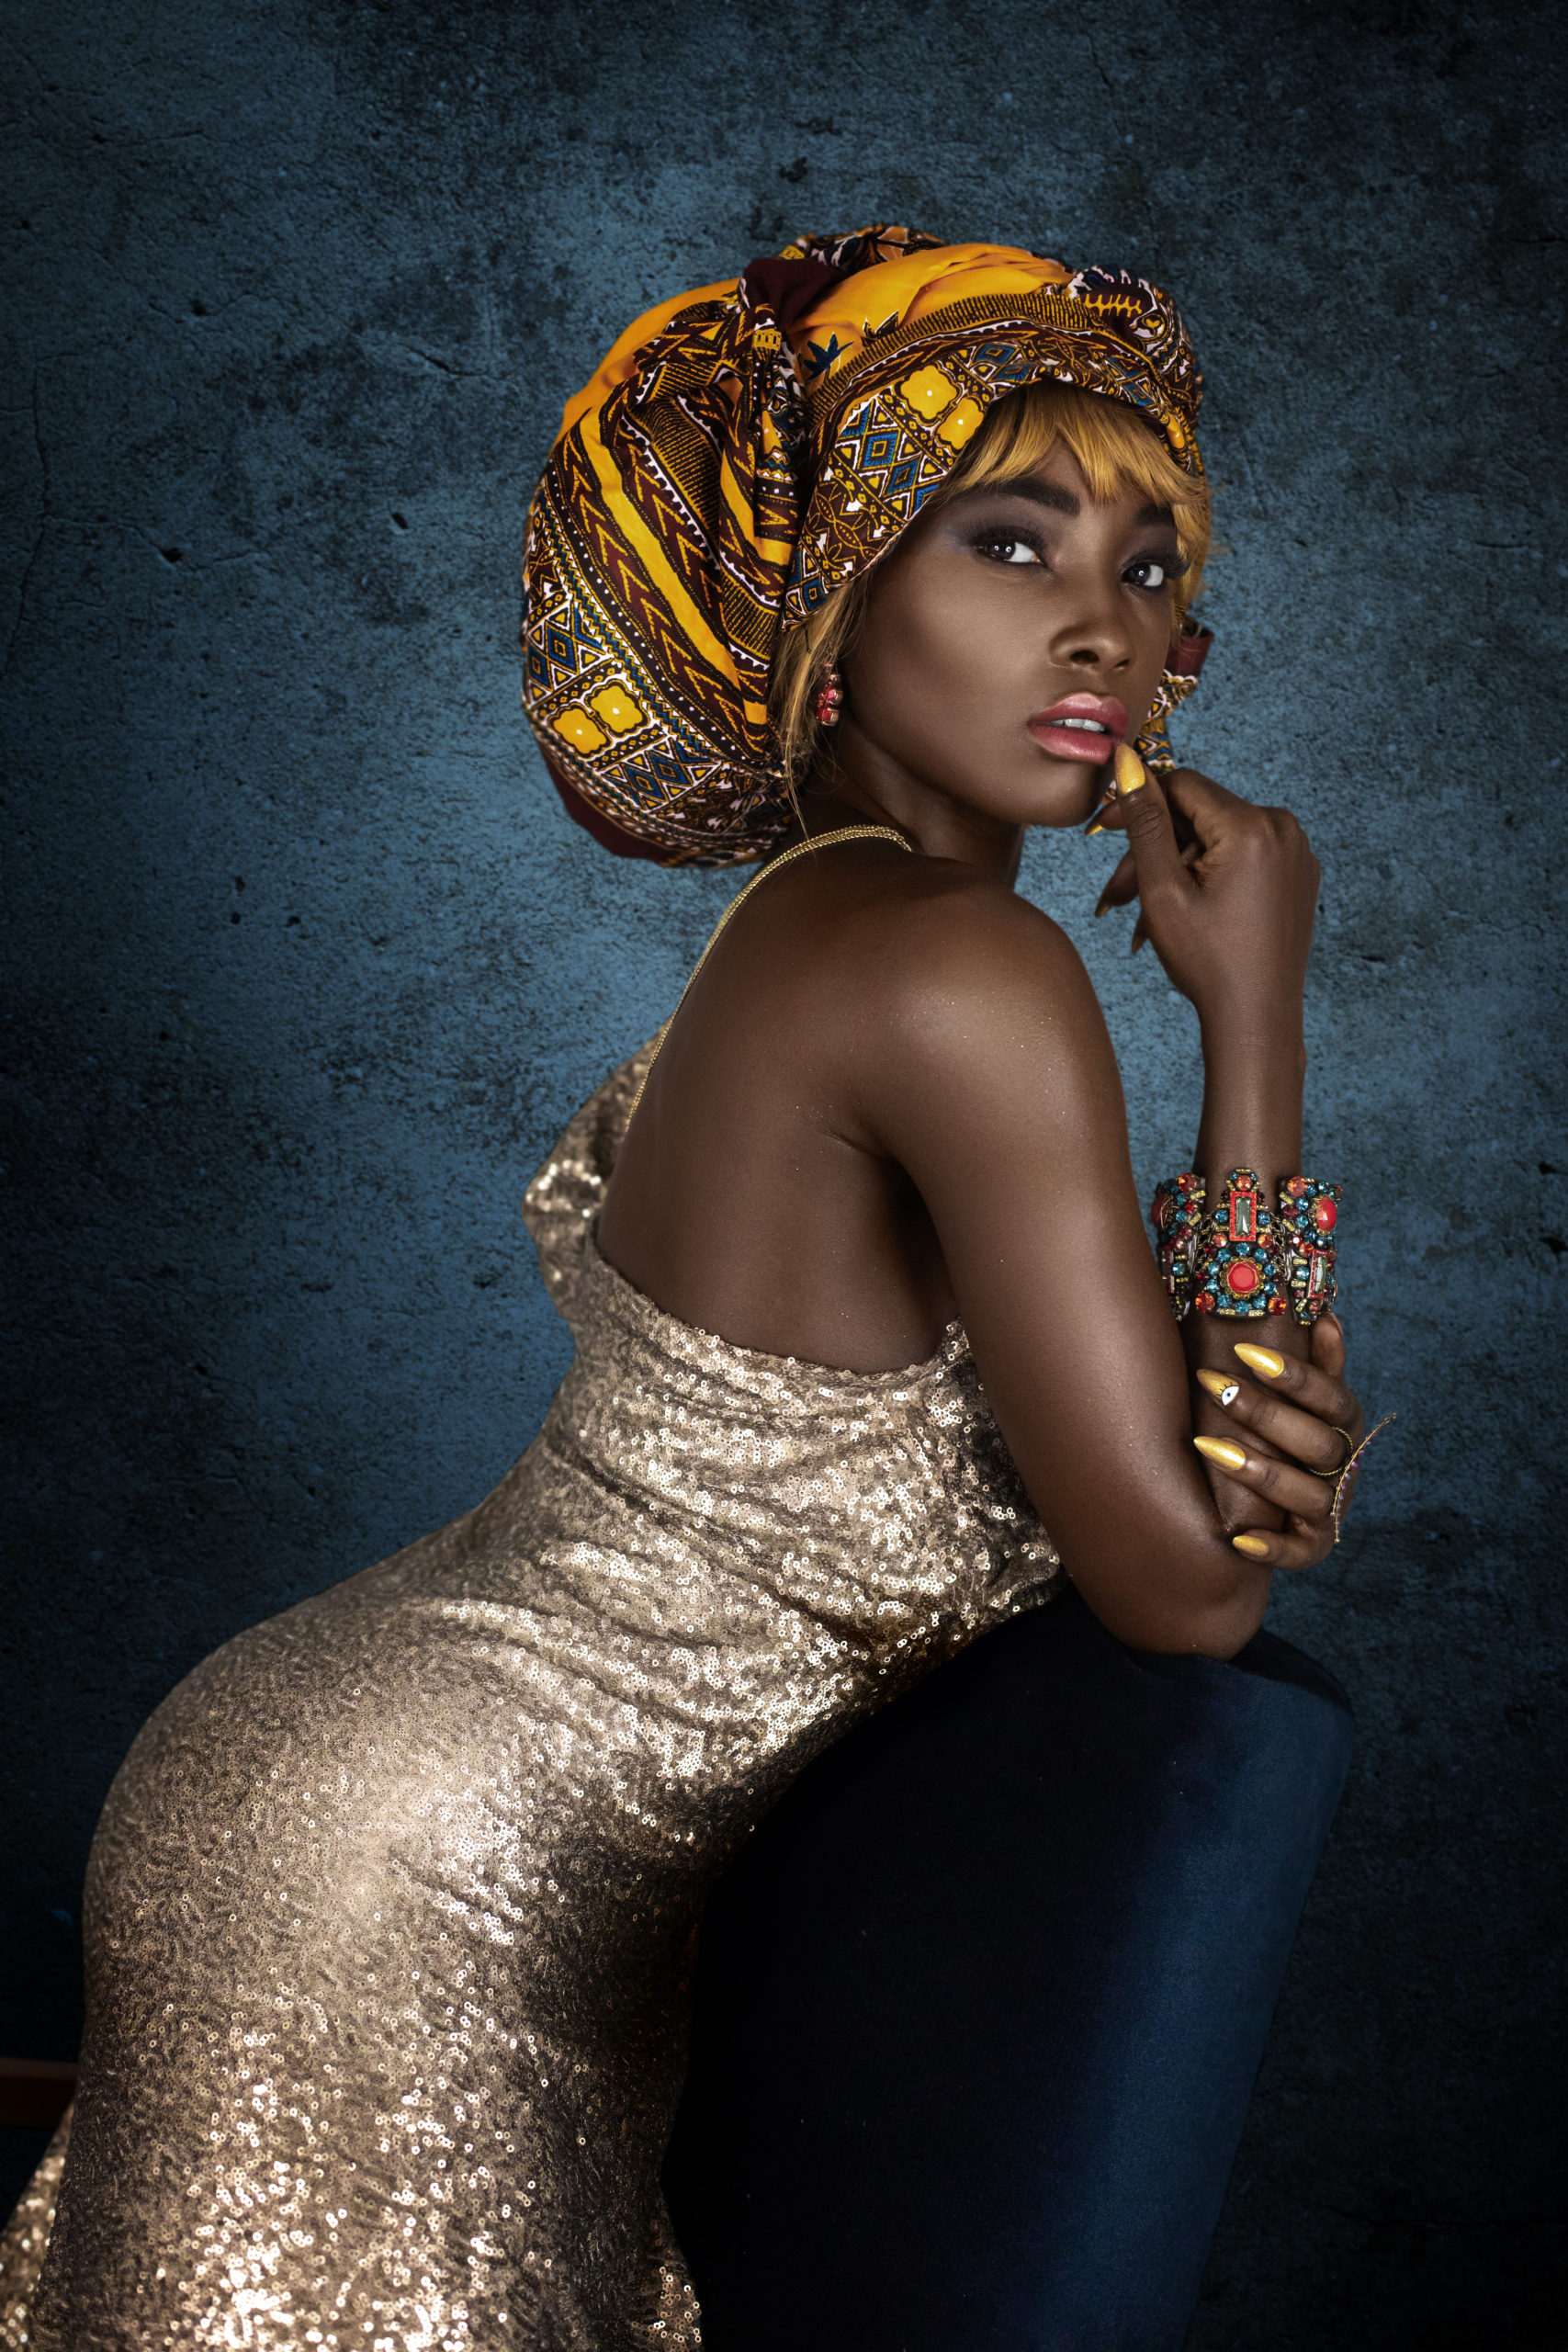 Female Egyptian Wearing a Golden Dress & Colorful Headwrap